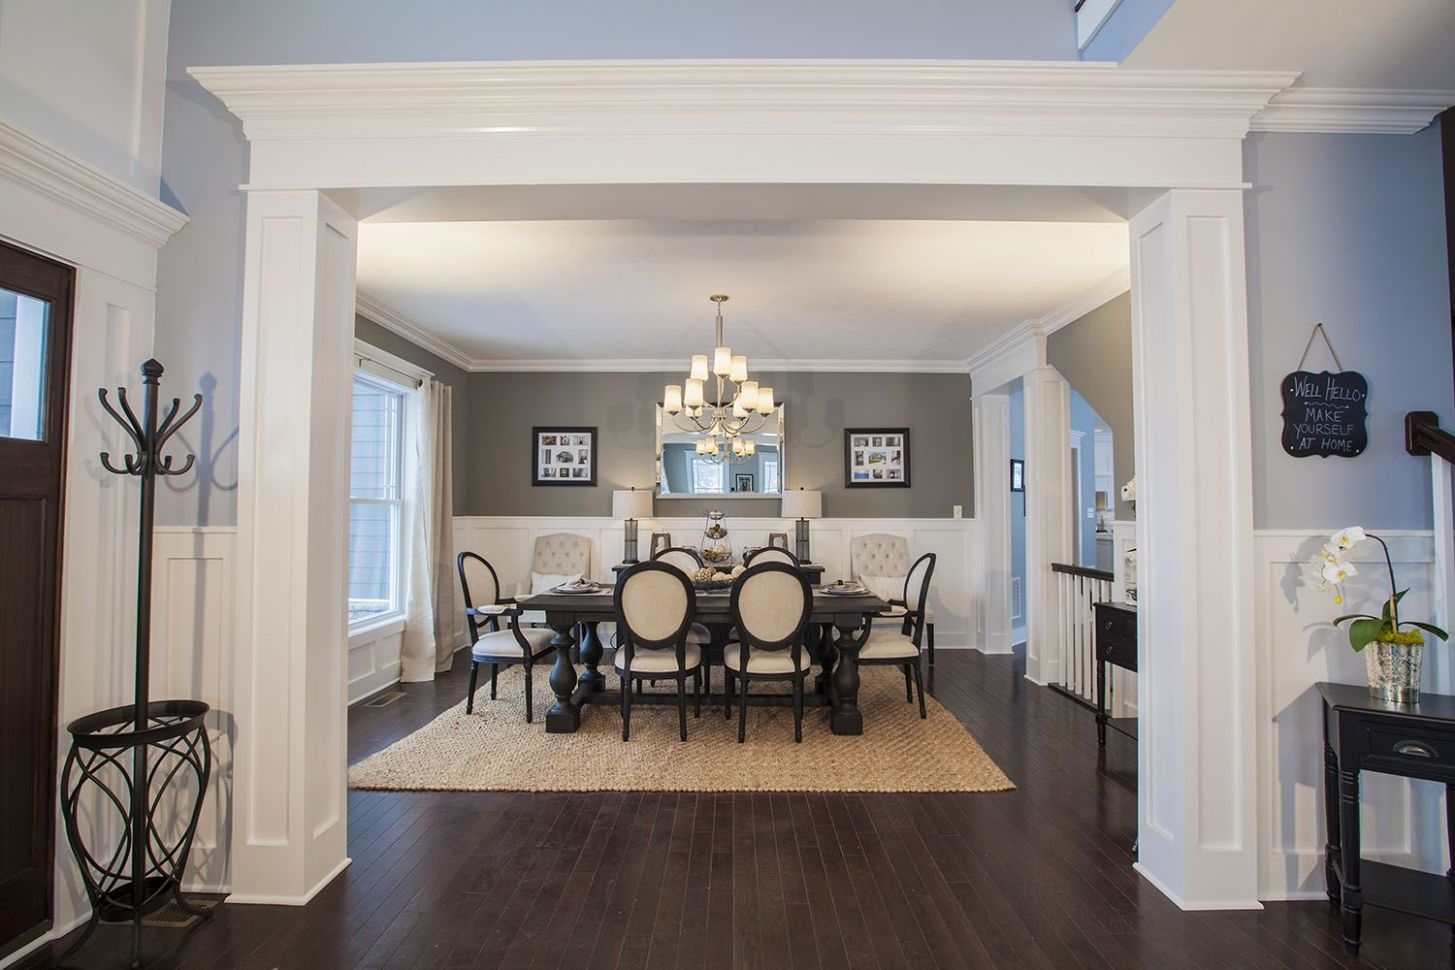 Exquisite molding creates a grand entrance into the dining room of ..